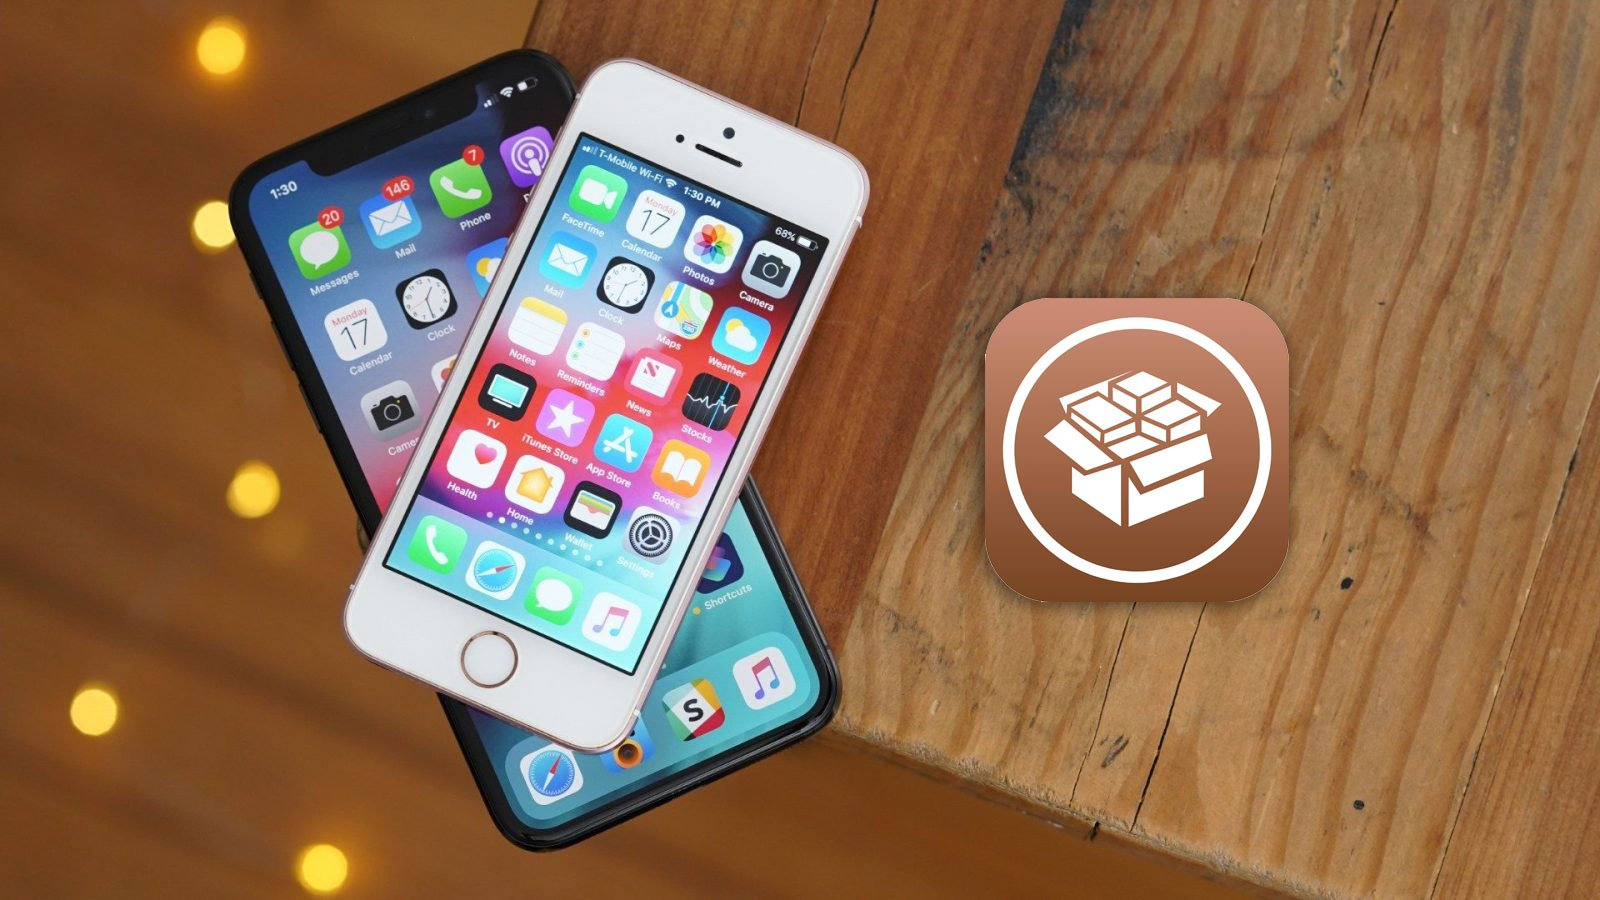 Have you jailbroken iOS 12.4, what do you install mod, tweak?